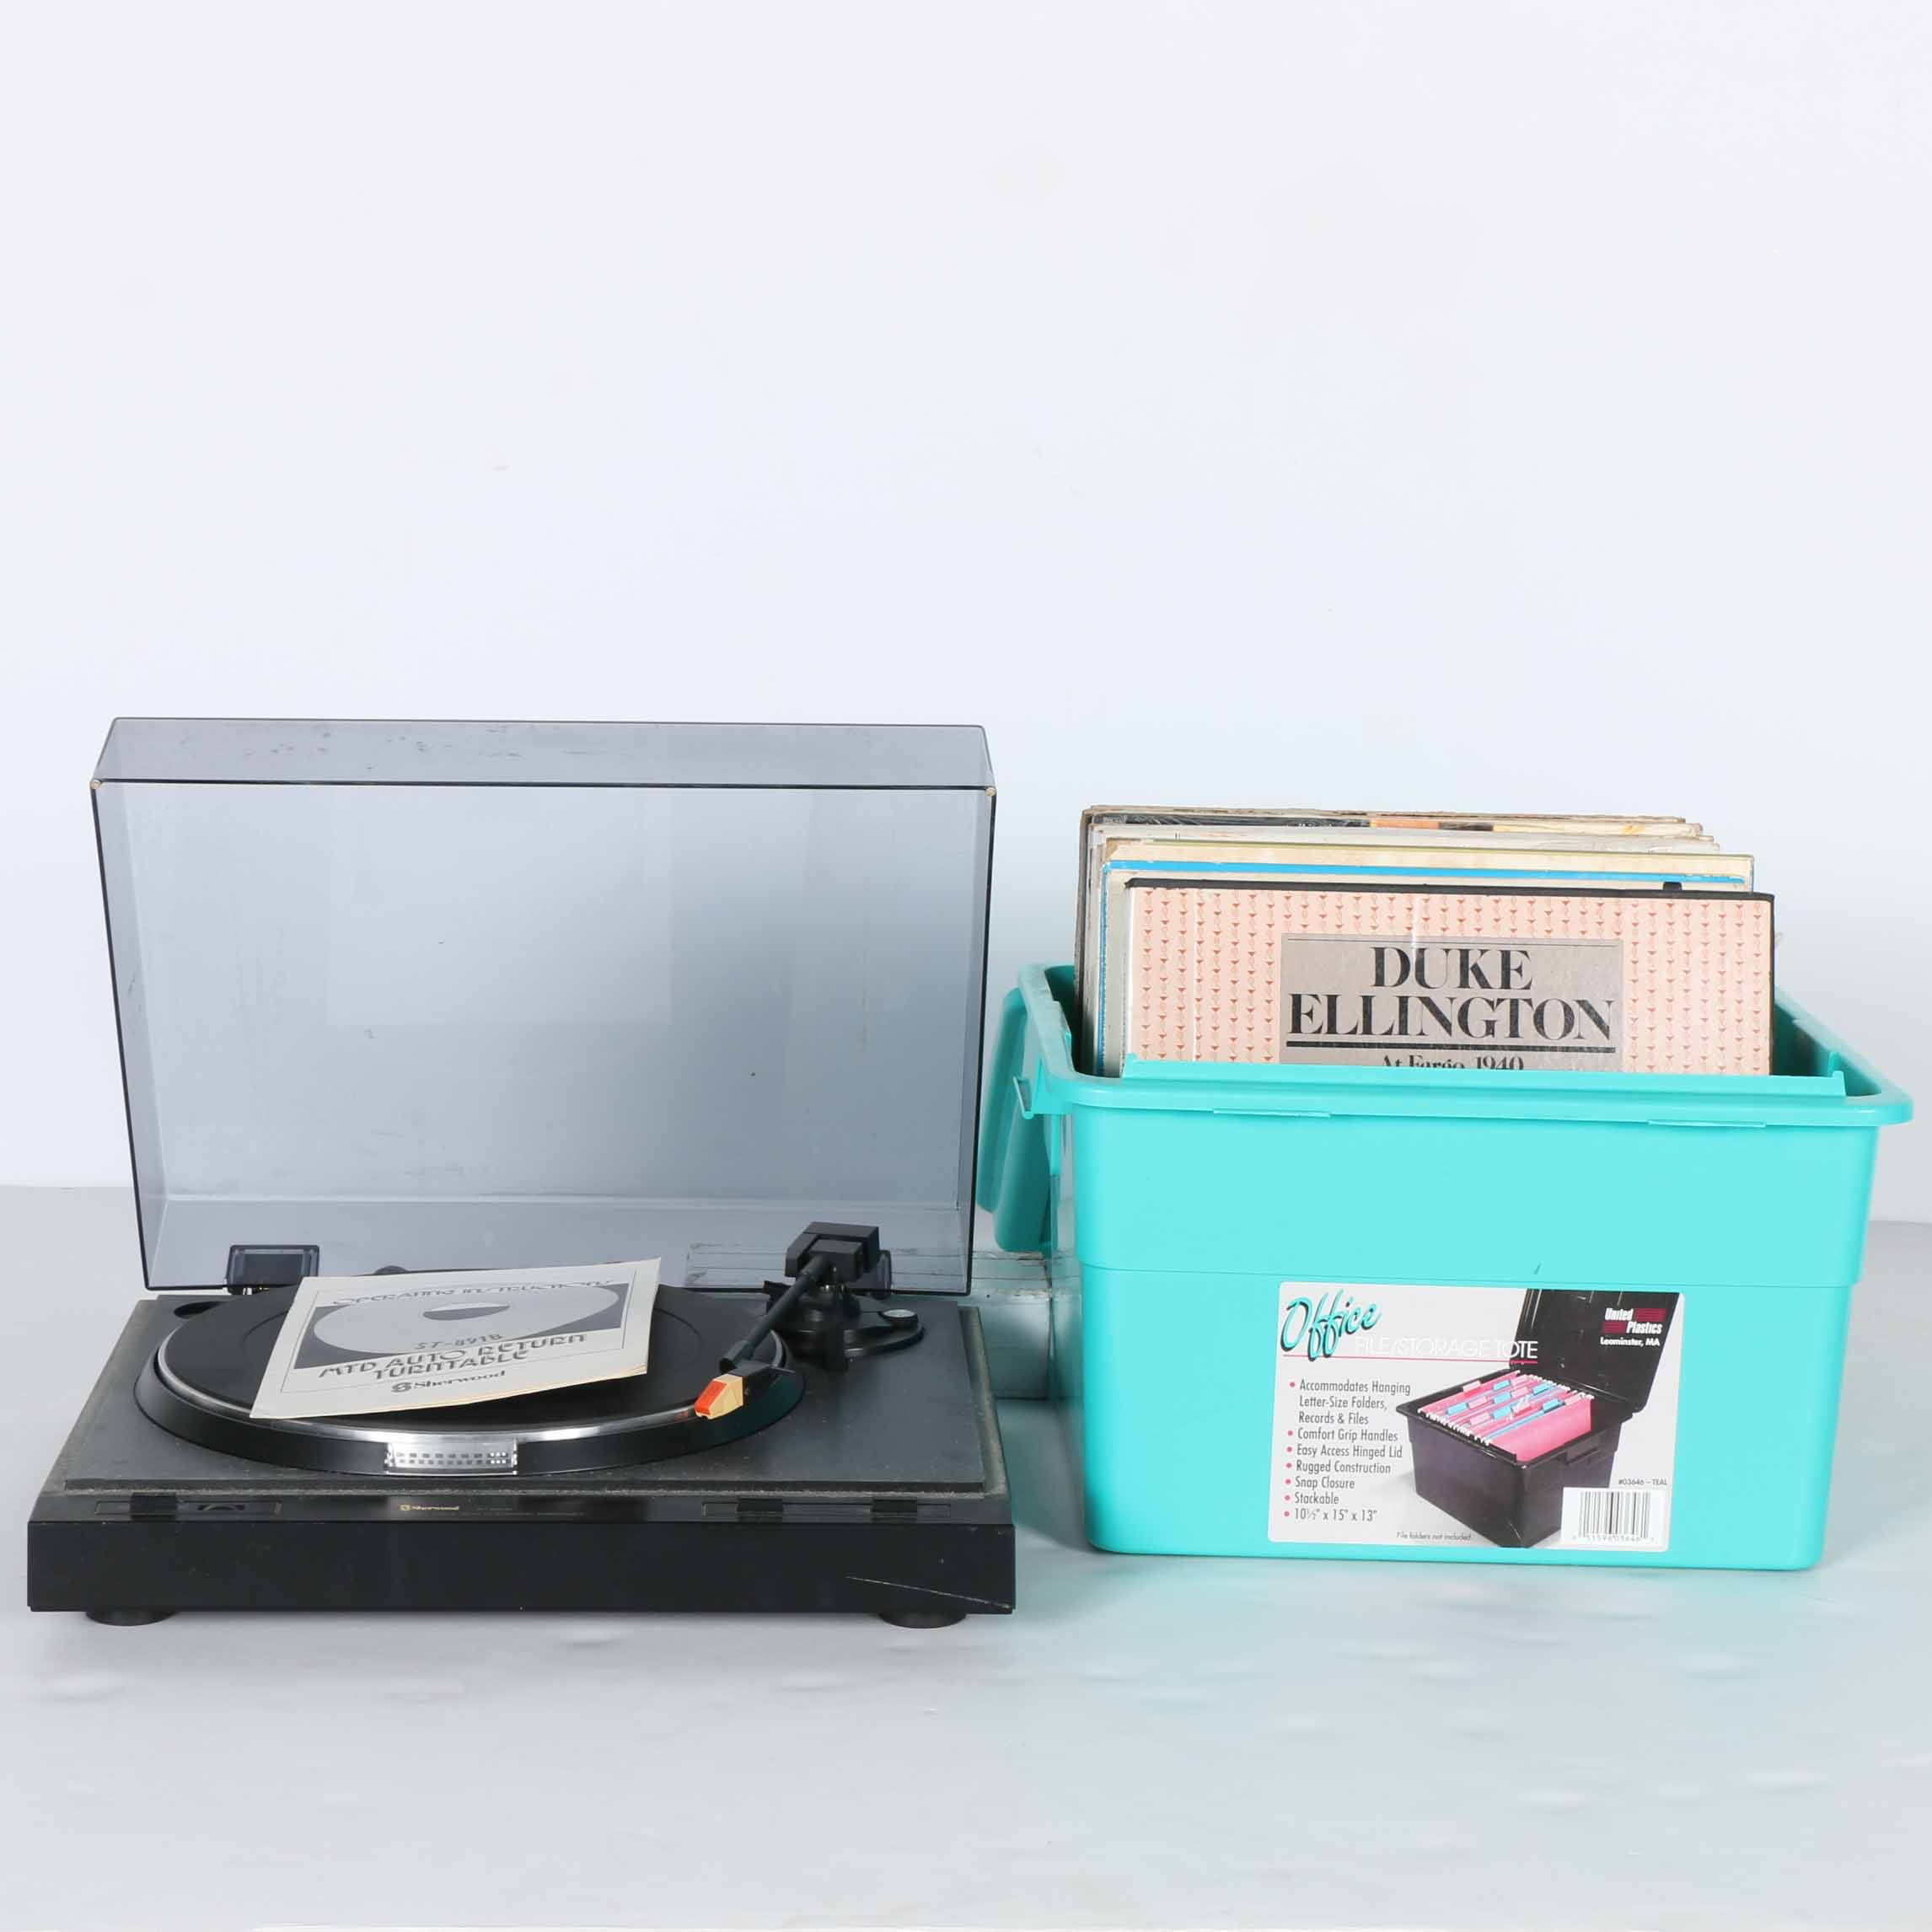 Sherwood Turntable With Jazz and Other LPs